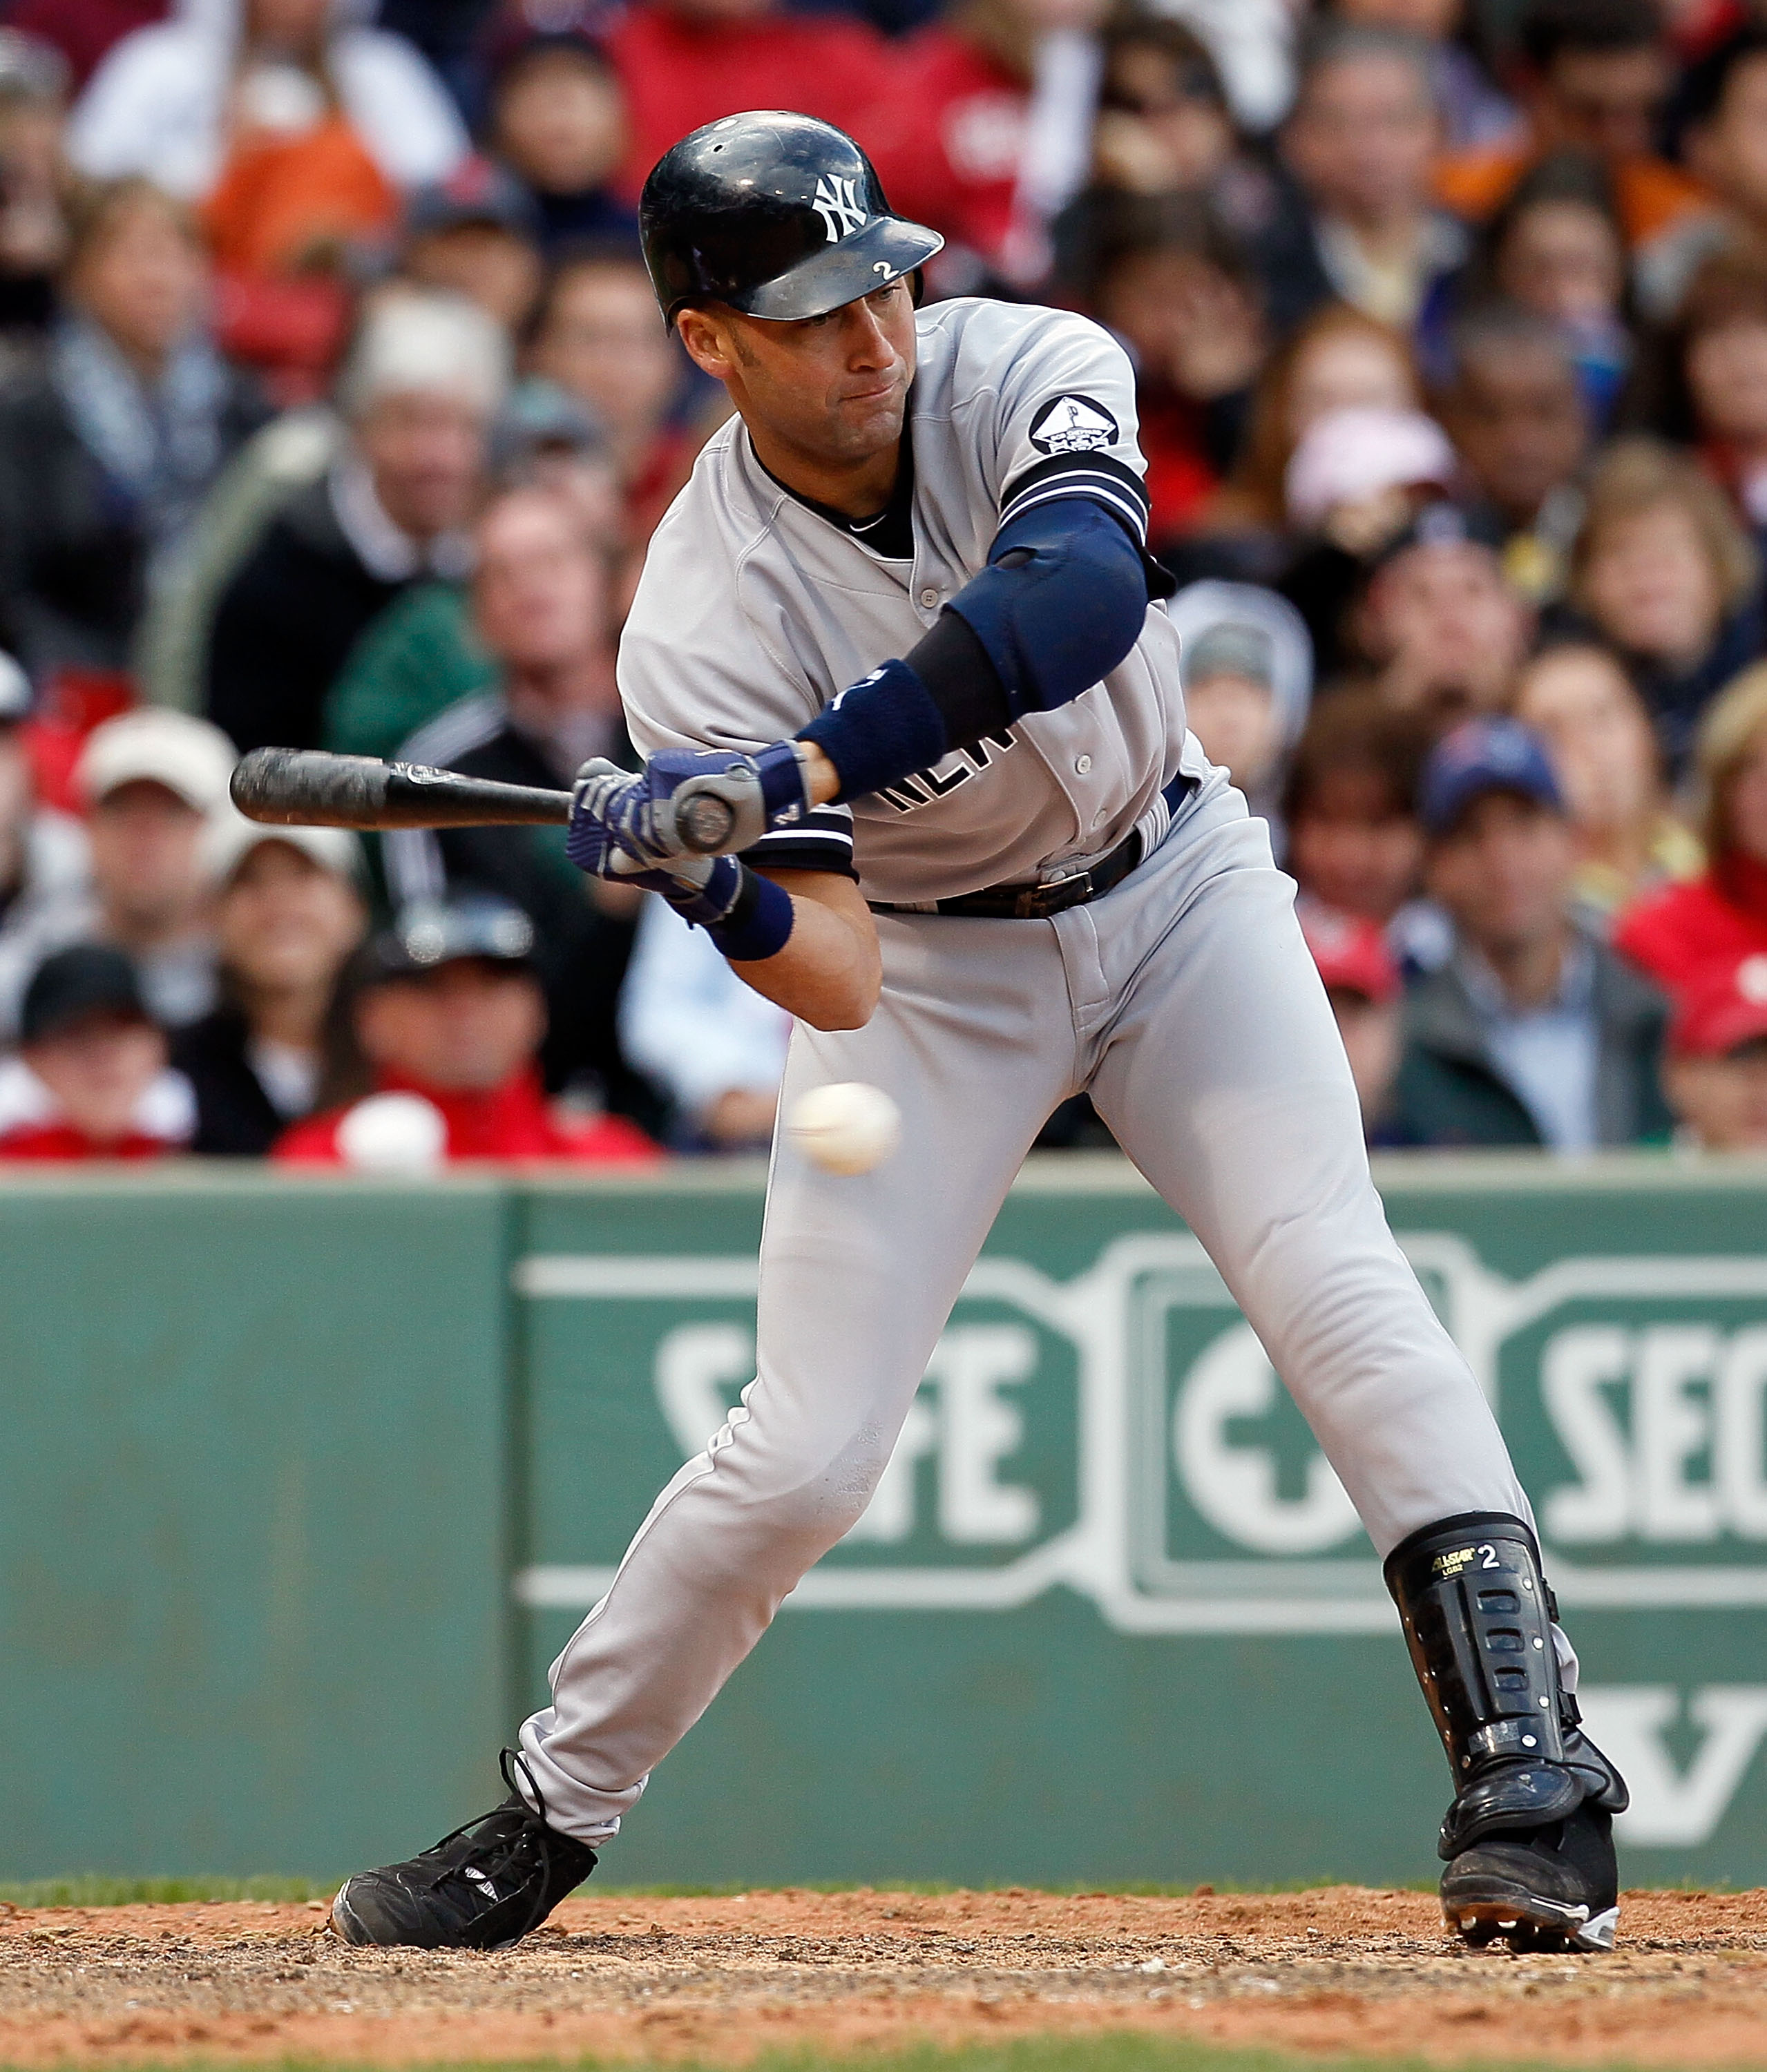 BOSTON - OCTOBER 3:  Derek Jeter #2 of the New York Yankees watches a called third strike during a game against the Boston Red Sox at Fenway Park, October 3, 2010, in Boston, Massachusetts. (Photo by Jim Rogash/Getty Images)